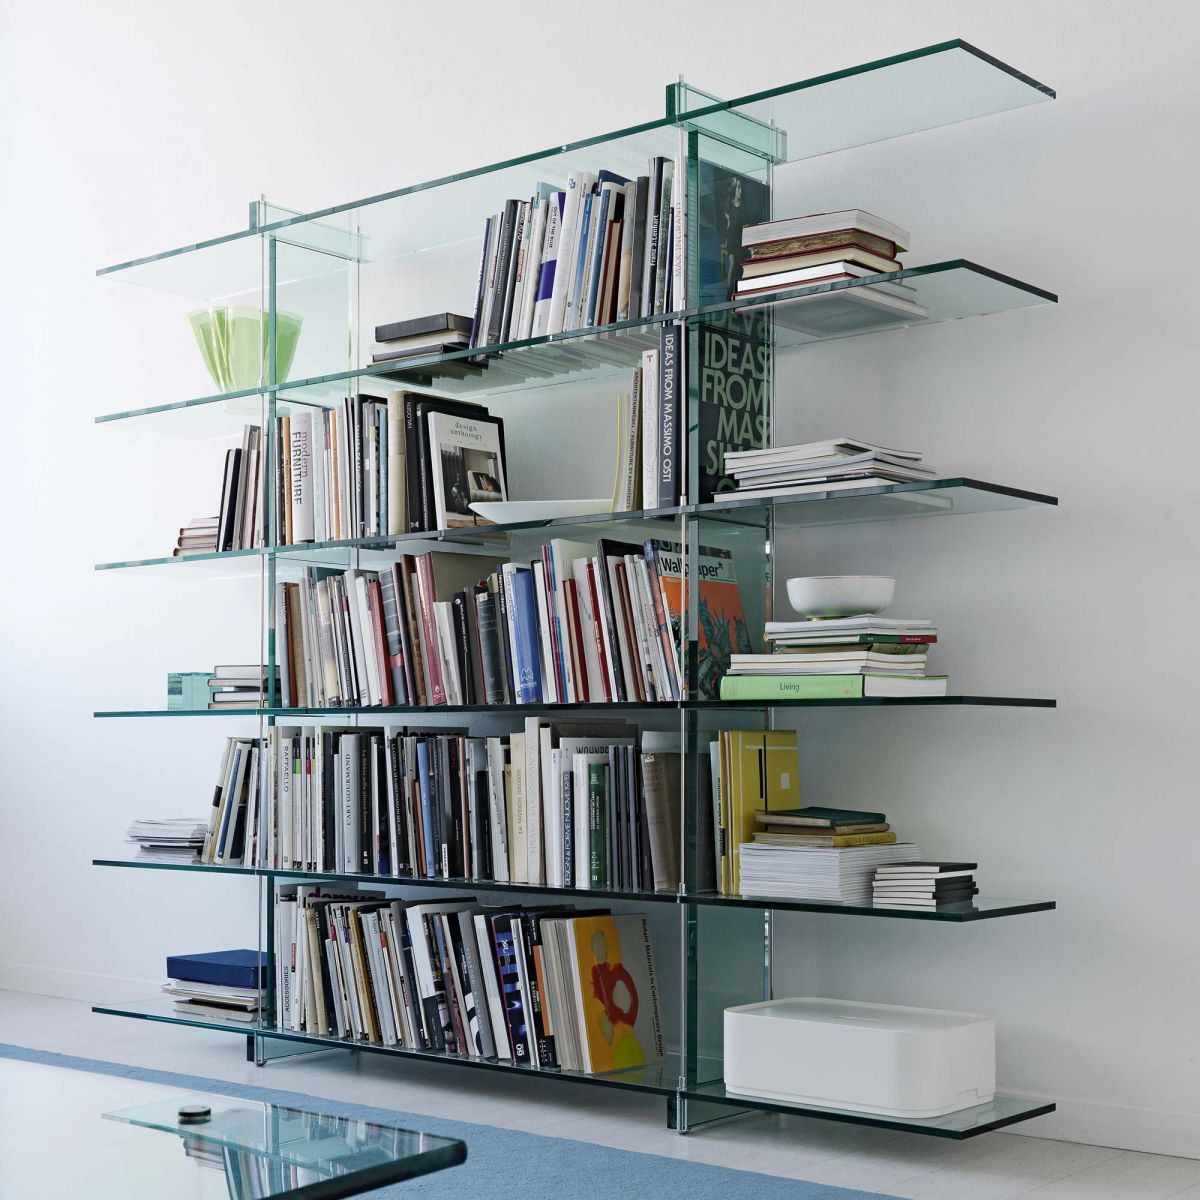 Teso_bookshelf_furniture